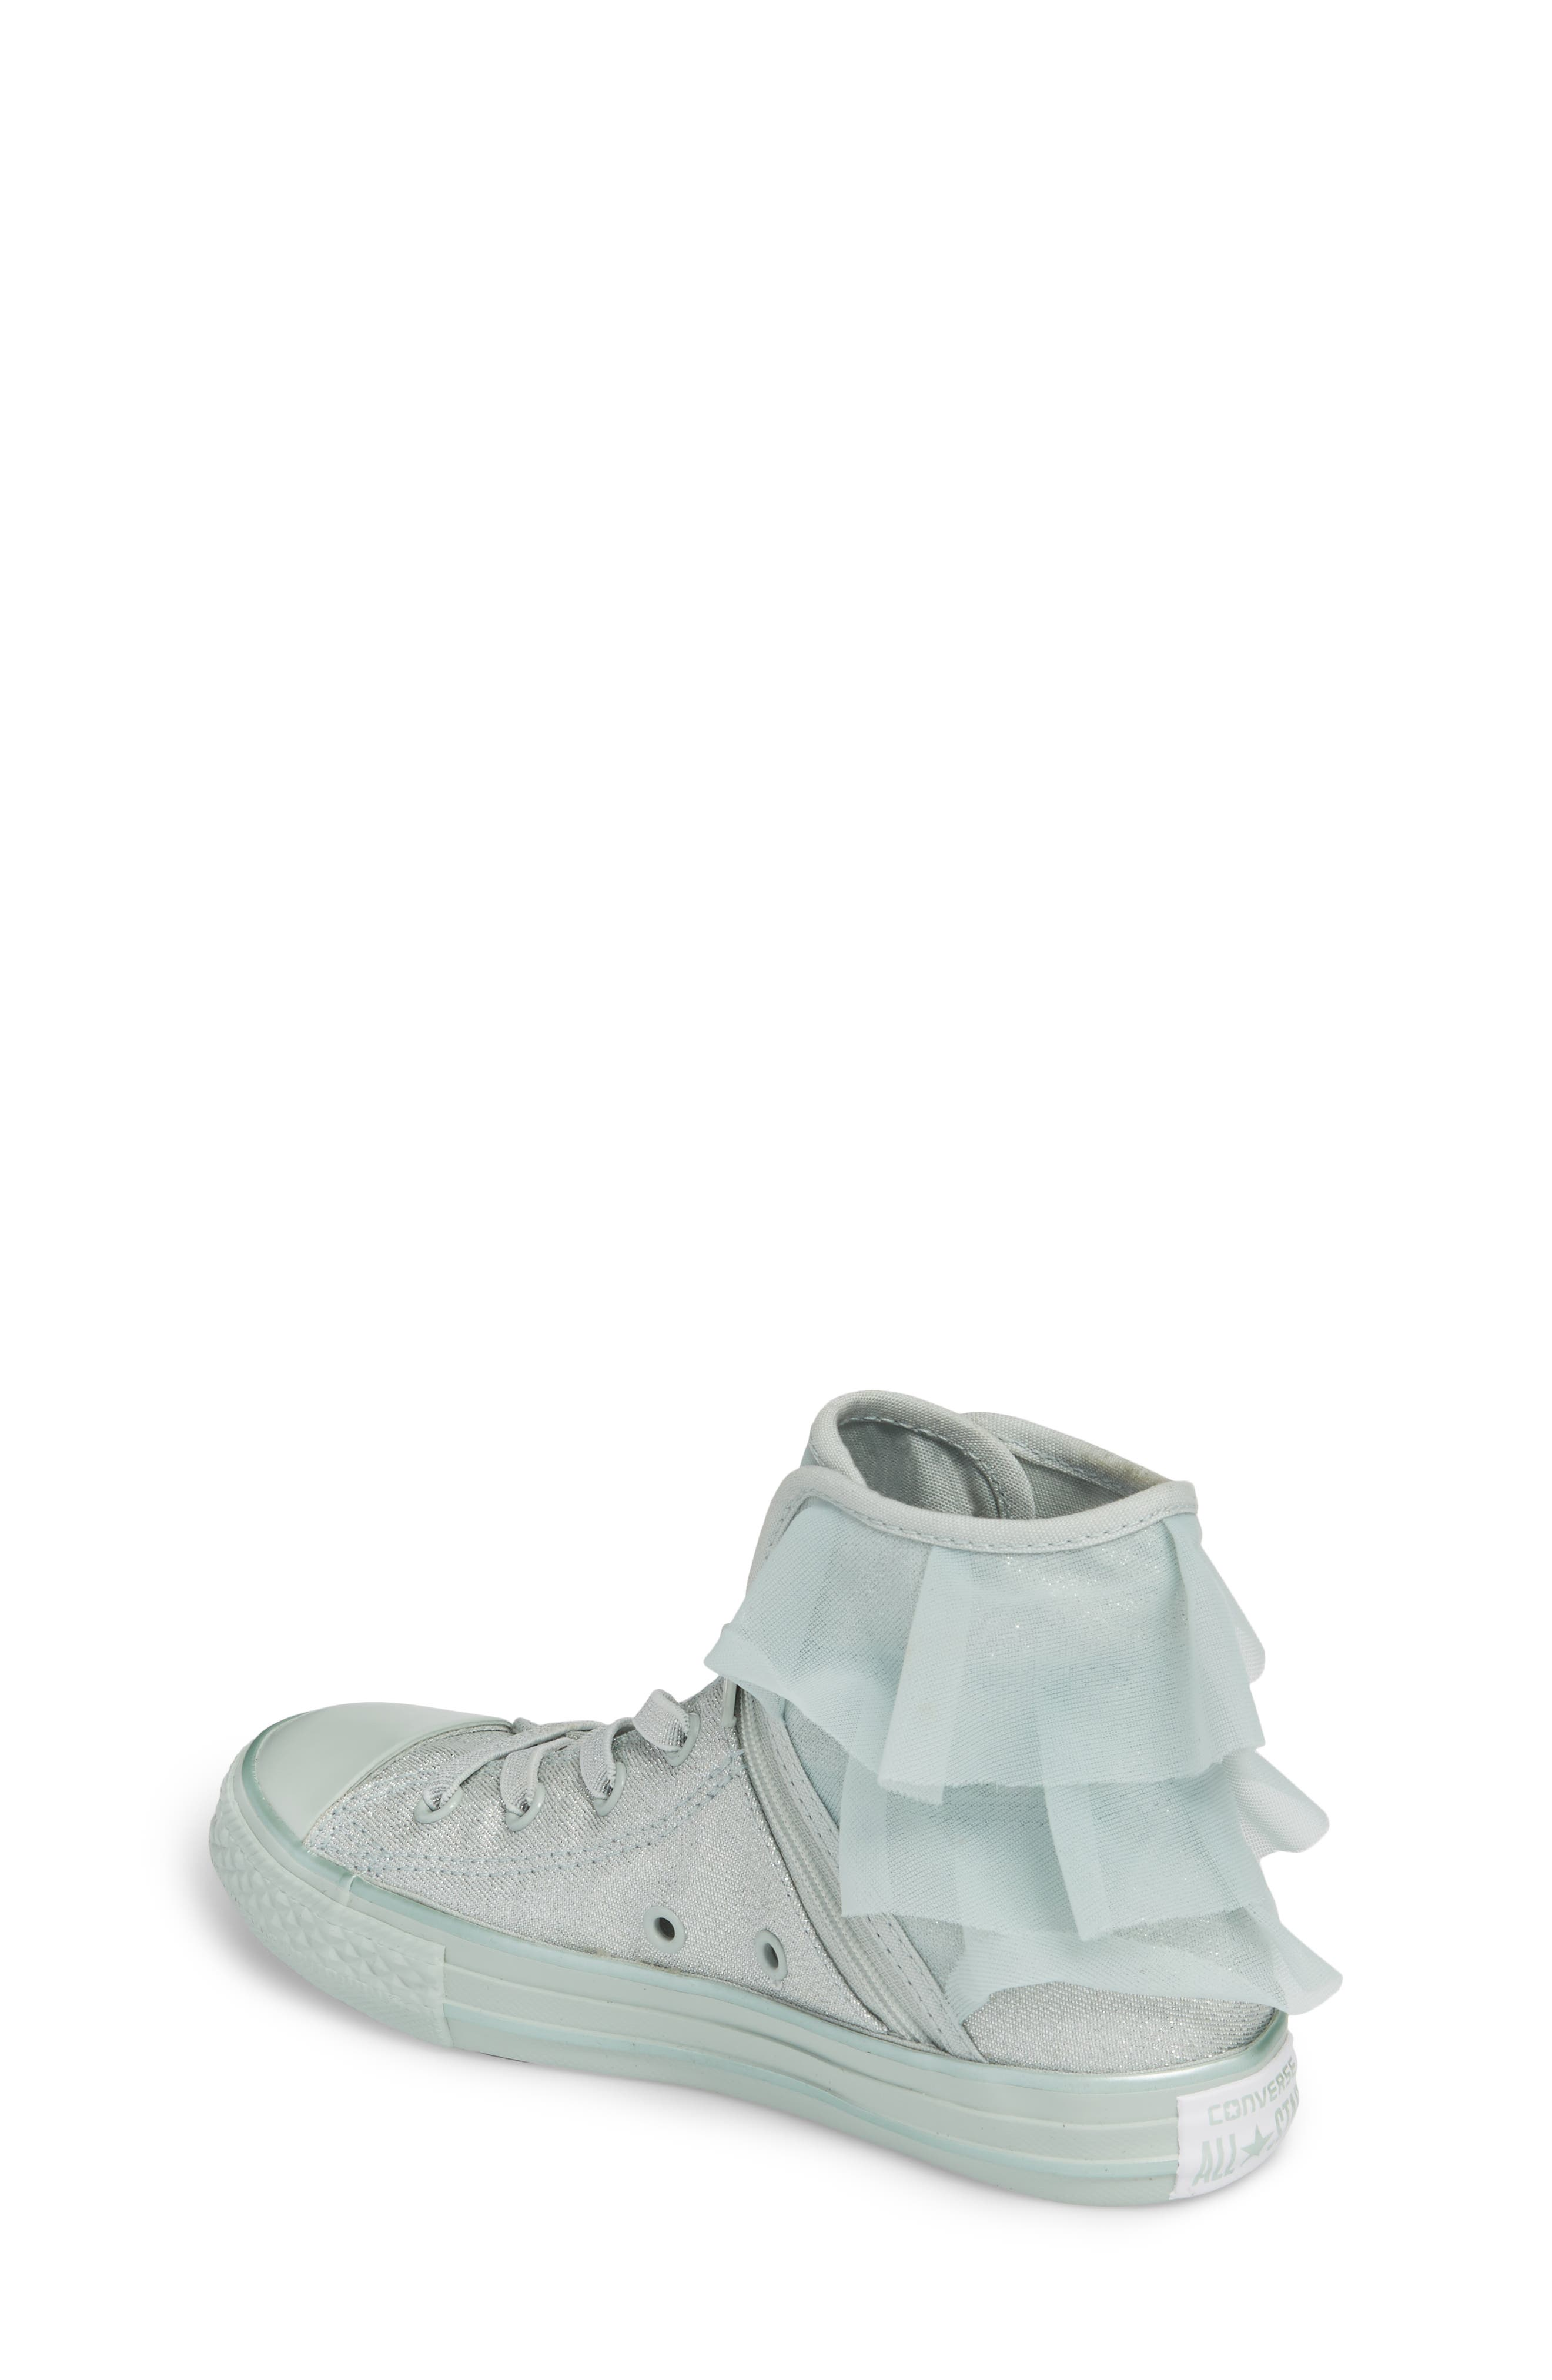 All Star<sup>®</sup> Mono Shine Party High Top Sneaker,                             Alternate thumbnail 2, color,